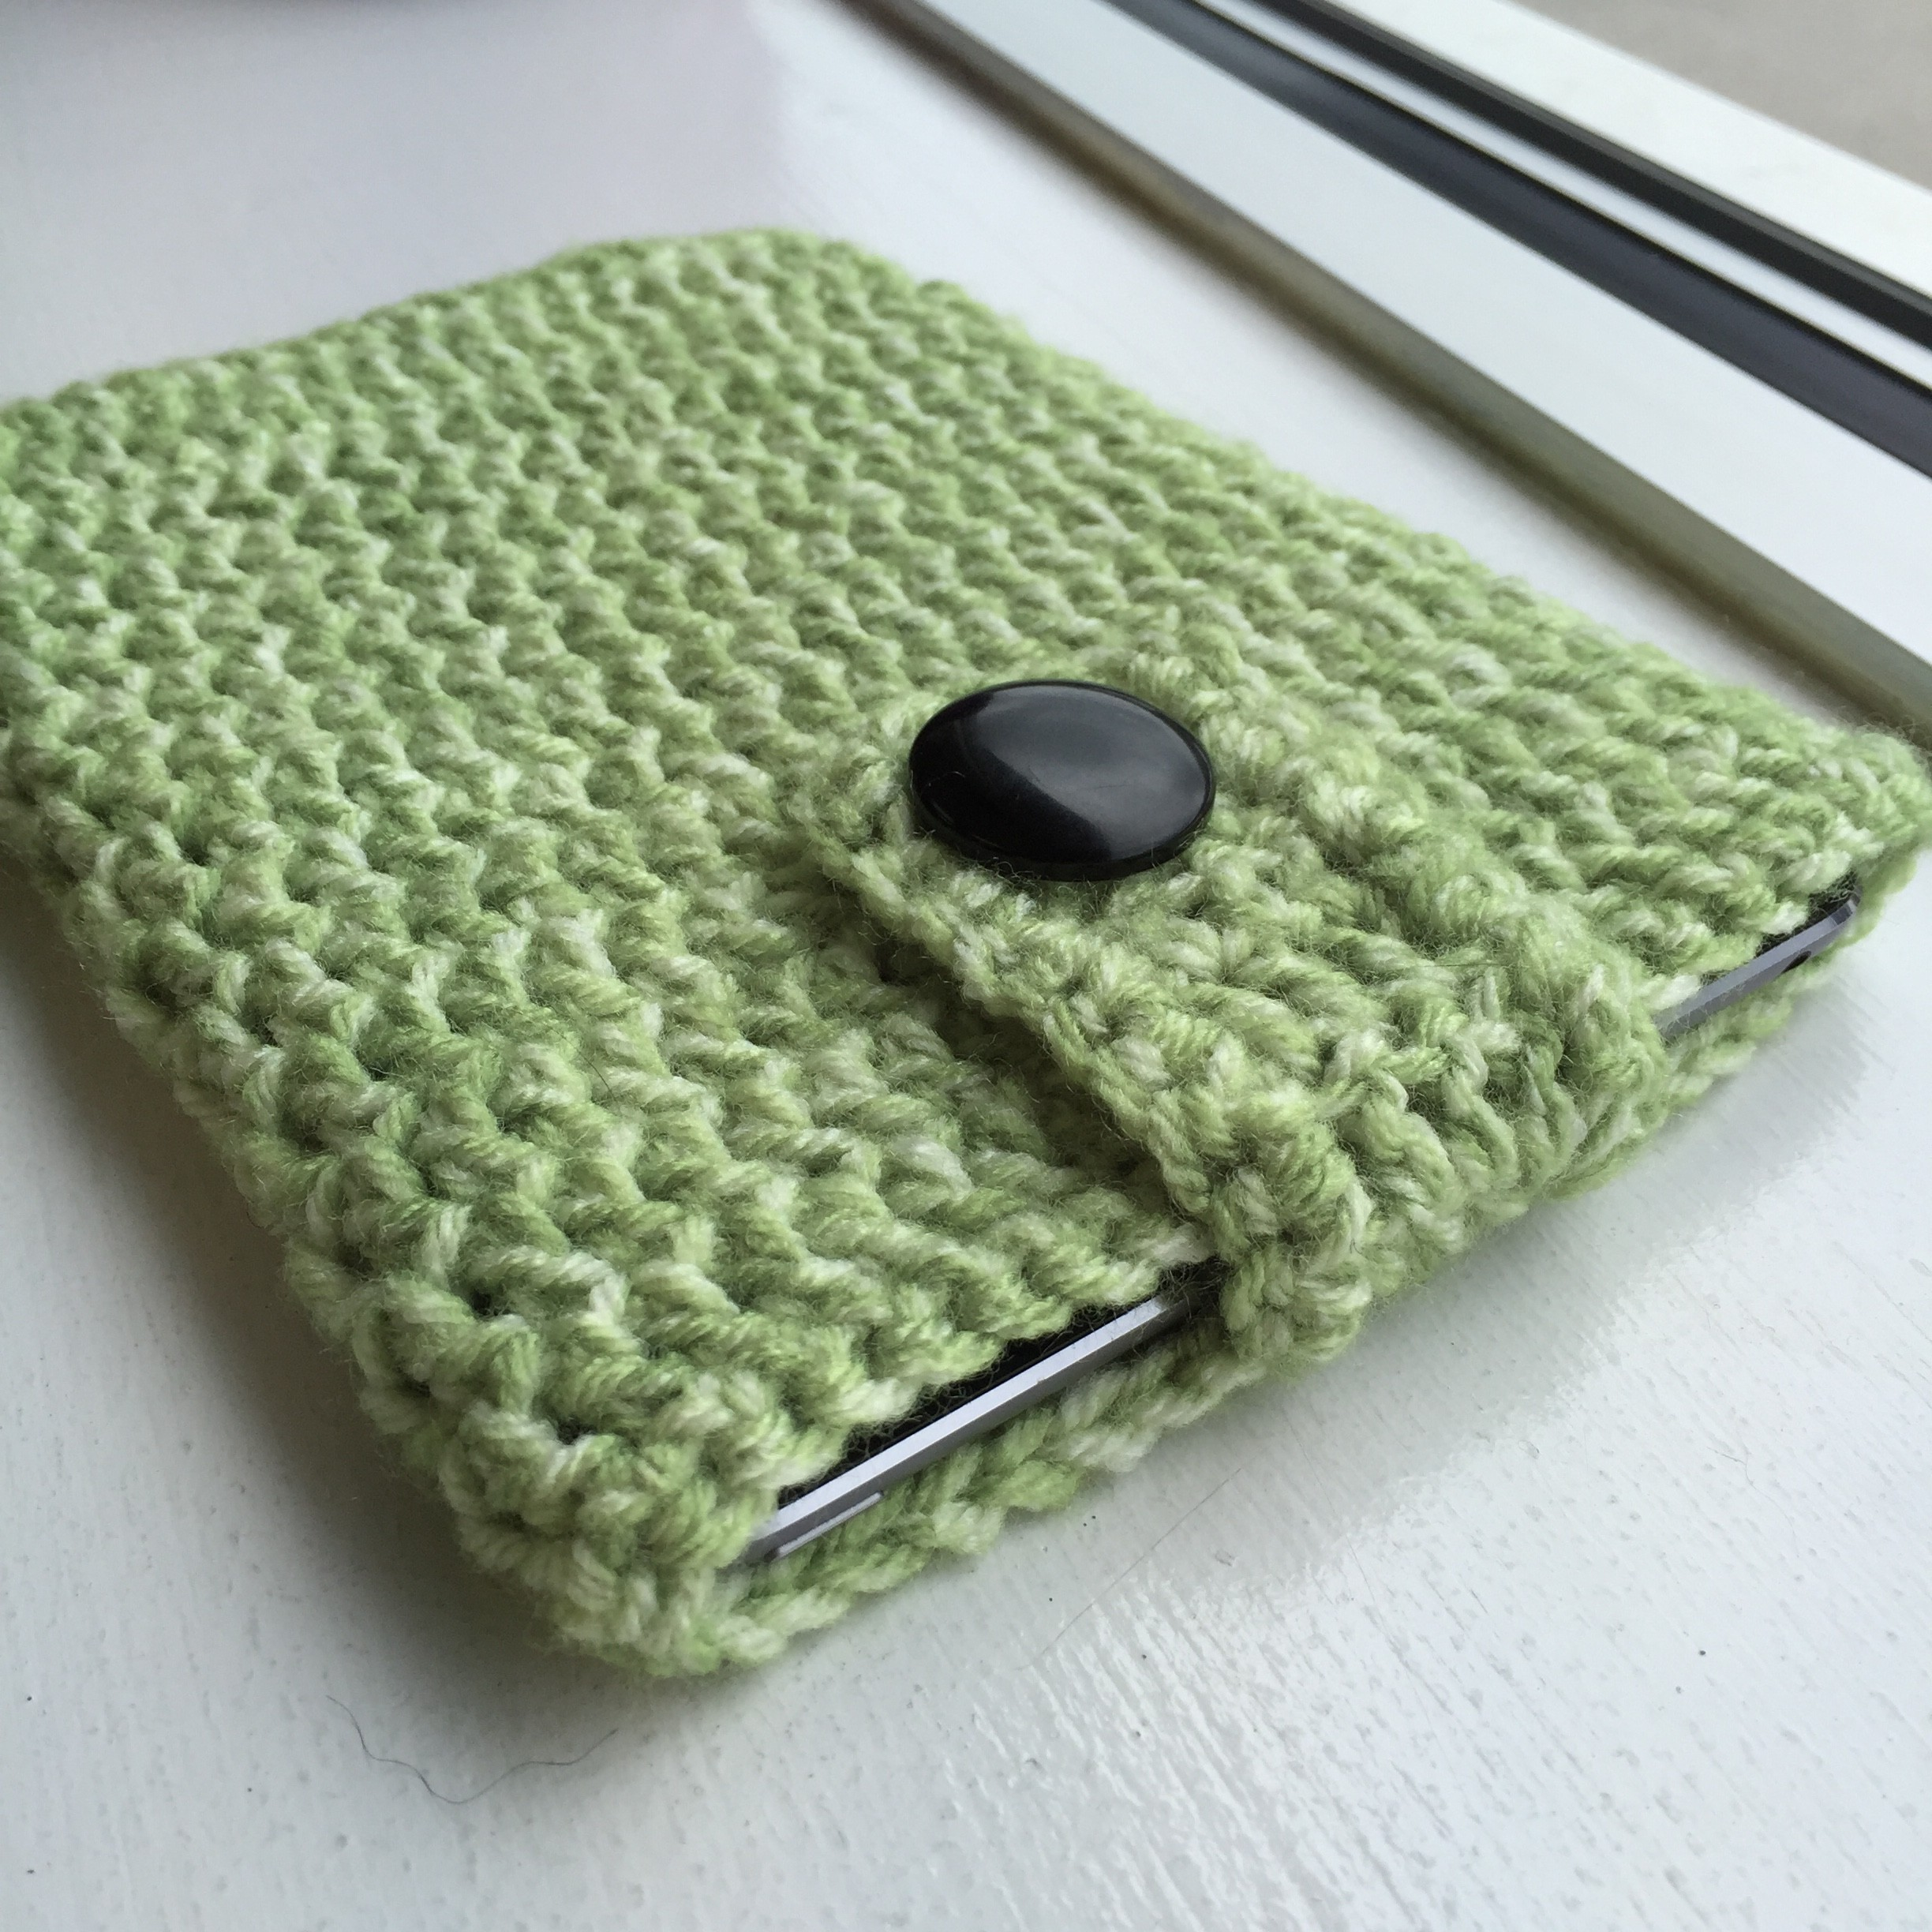 Handknit Golf Club Covers | marni made it